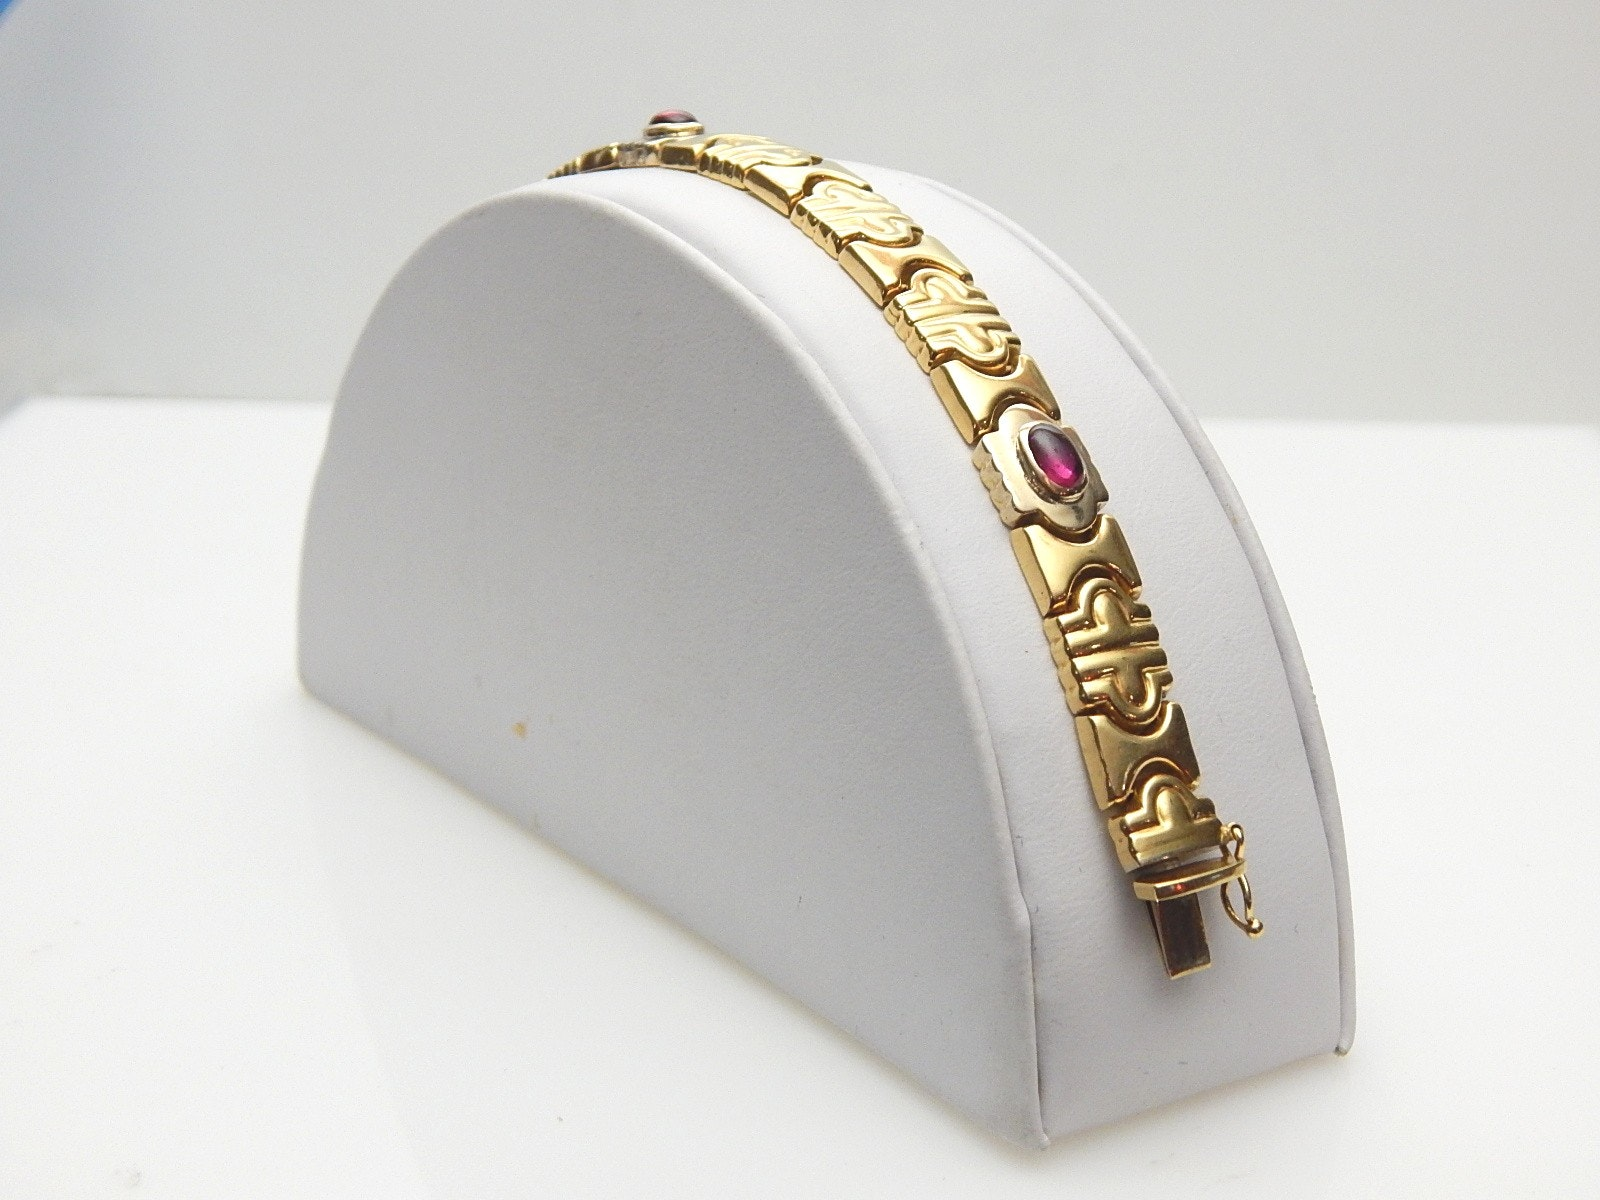 18K Yellow Gold Link Bracelet with Rubies